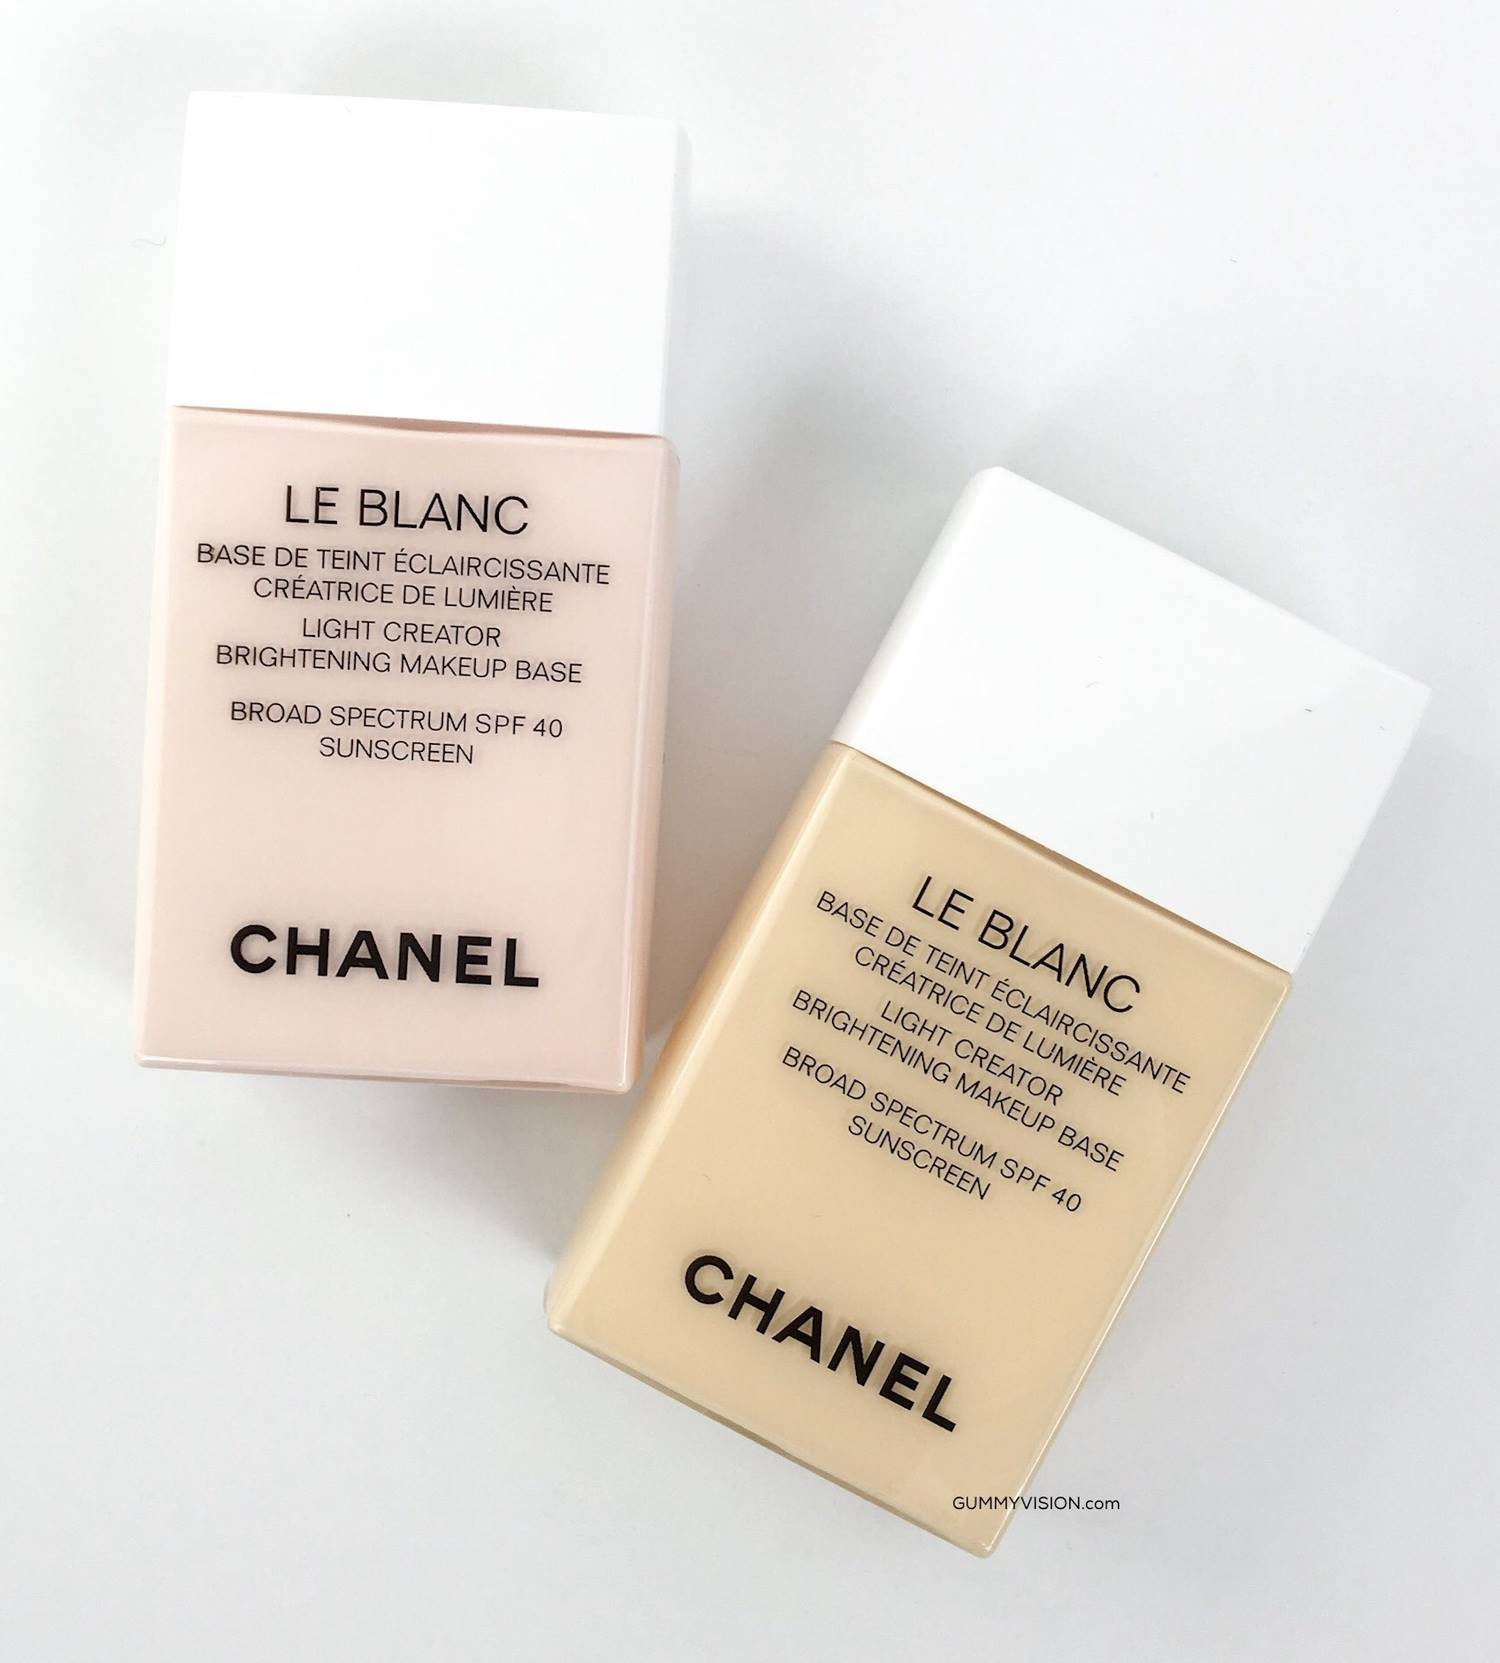 d78444c3587 Chanel Le Blanc Light Creator Brightening Makeup Base SPF 40 PA+++ ...